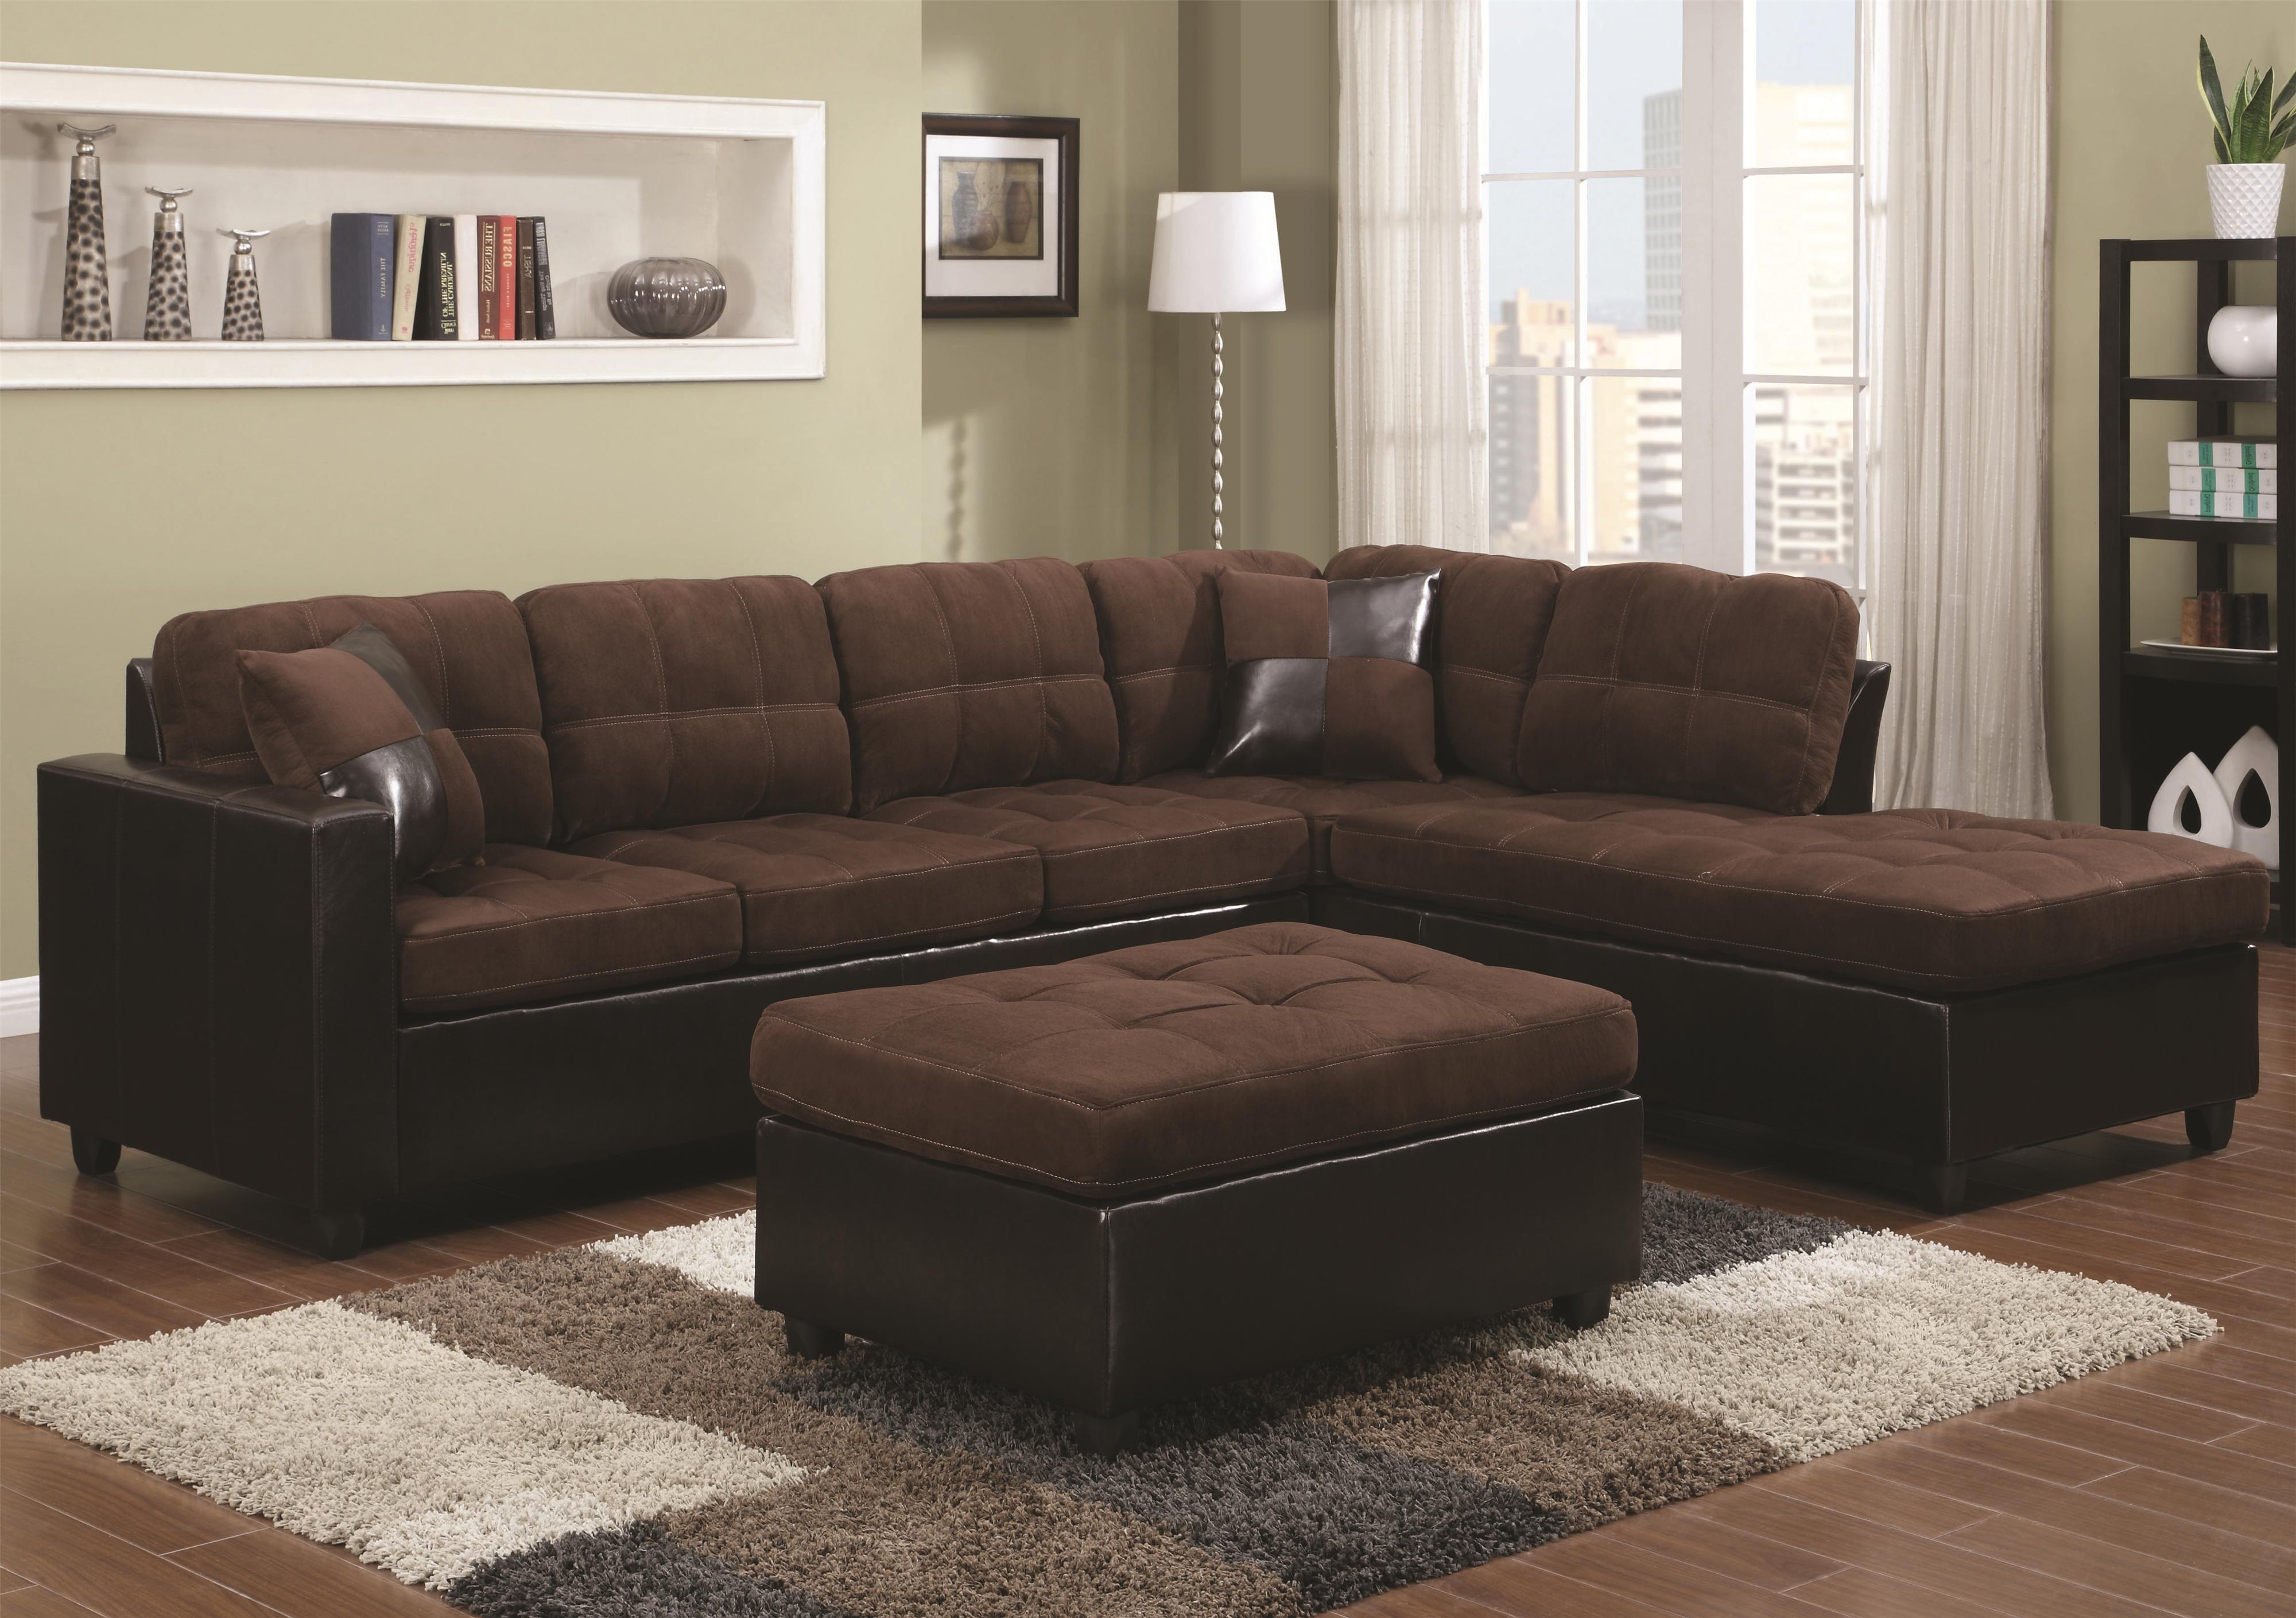 living functional size full small furniture rooms of sectional room farmers fabric spaces modern for sofas